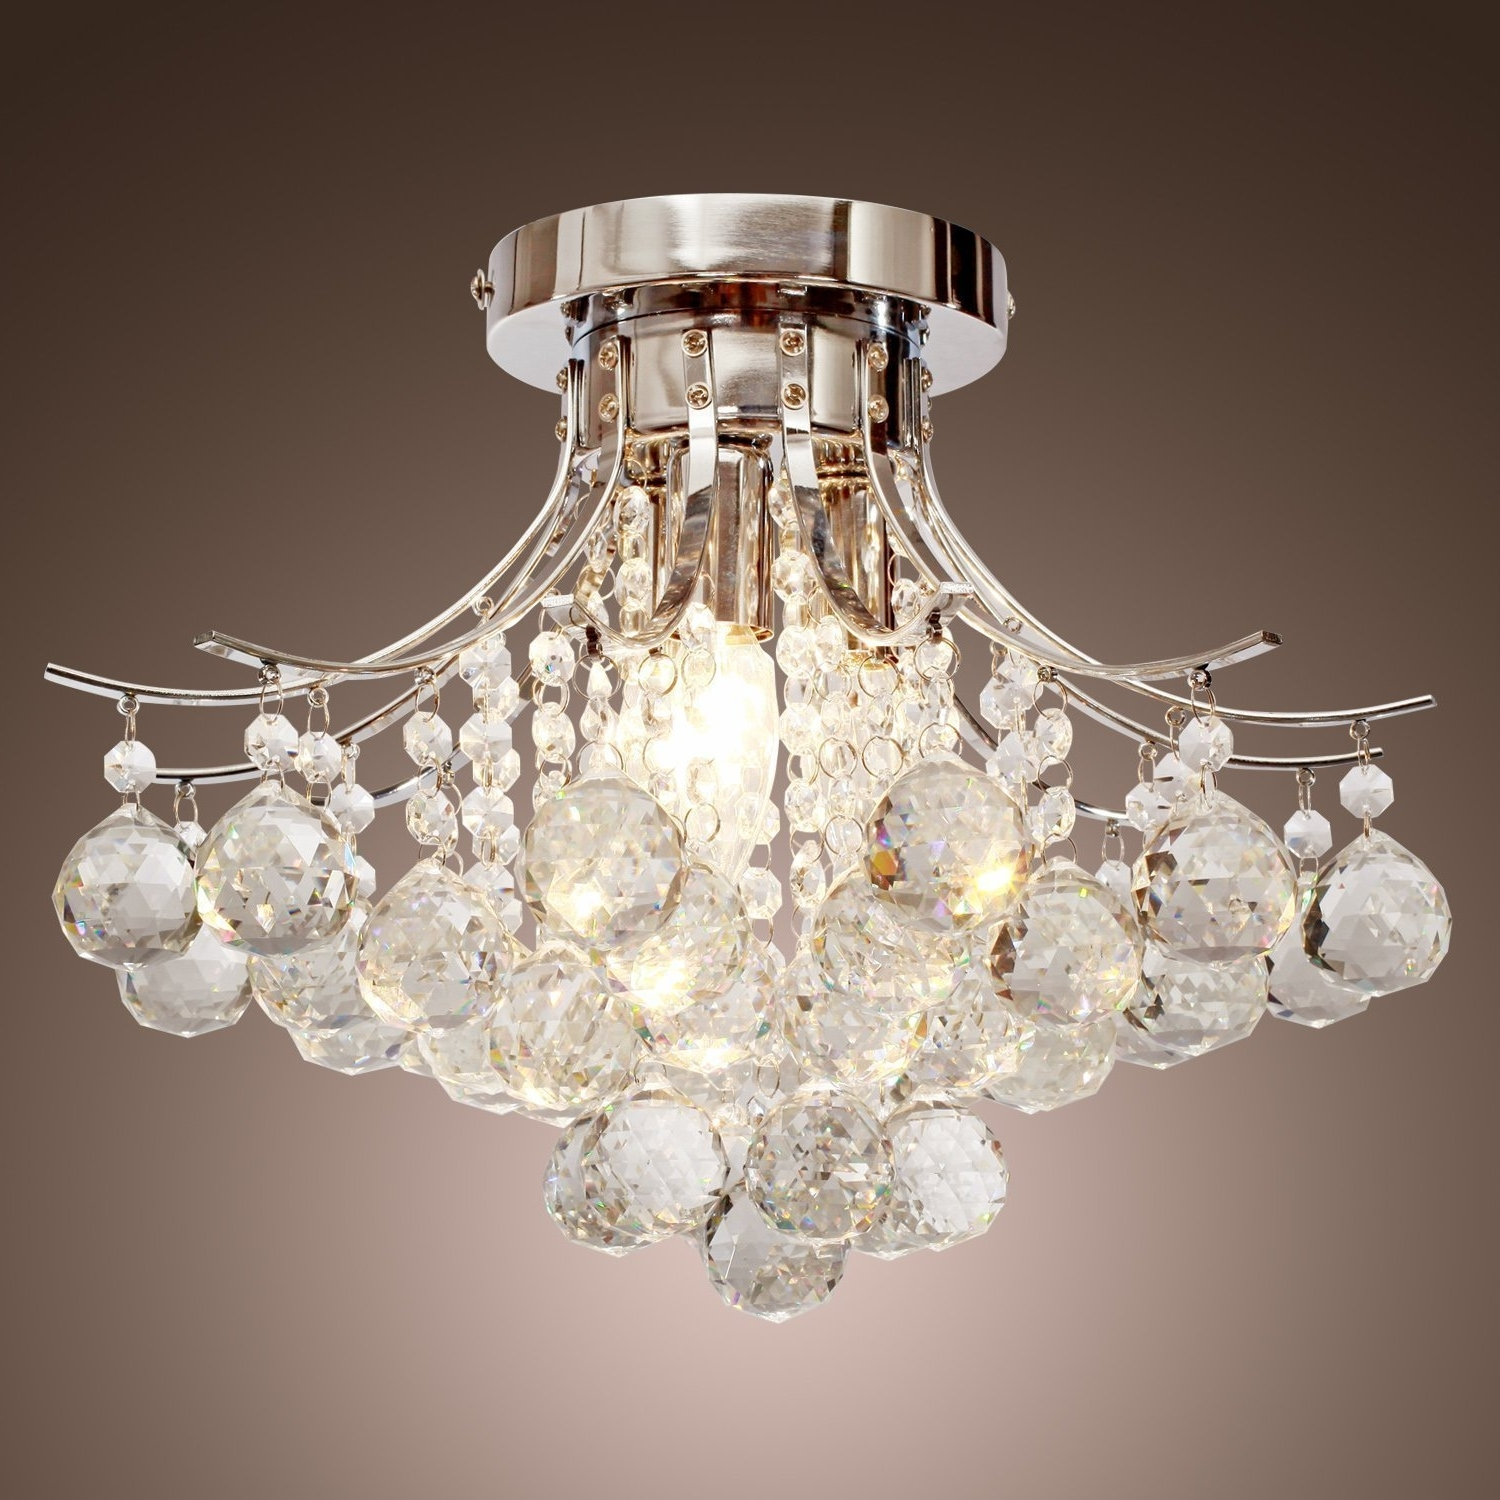 Light Fixture : Small Chandeliers Ikea Crystal Lighting City Of Inside Well Known Small Chandeliers (View 7 of 20)